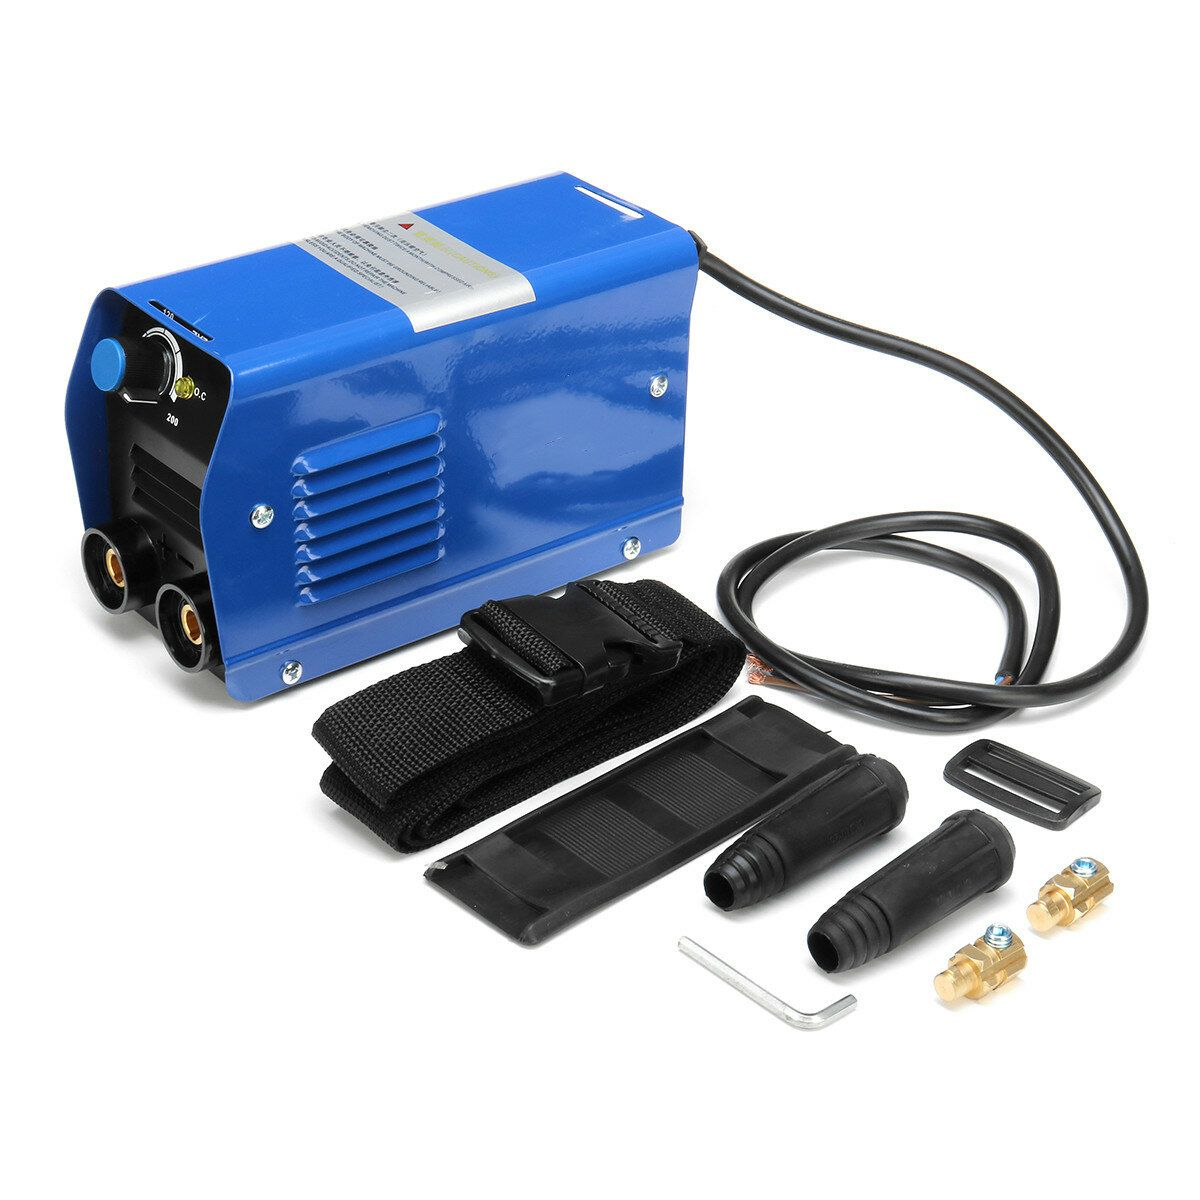 ZX7 200 220V 200A Portable Electric Welding Machine IGBT Inverter MMA W/ Insulated Electrode